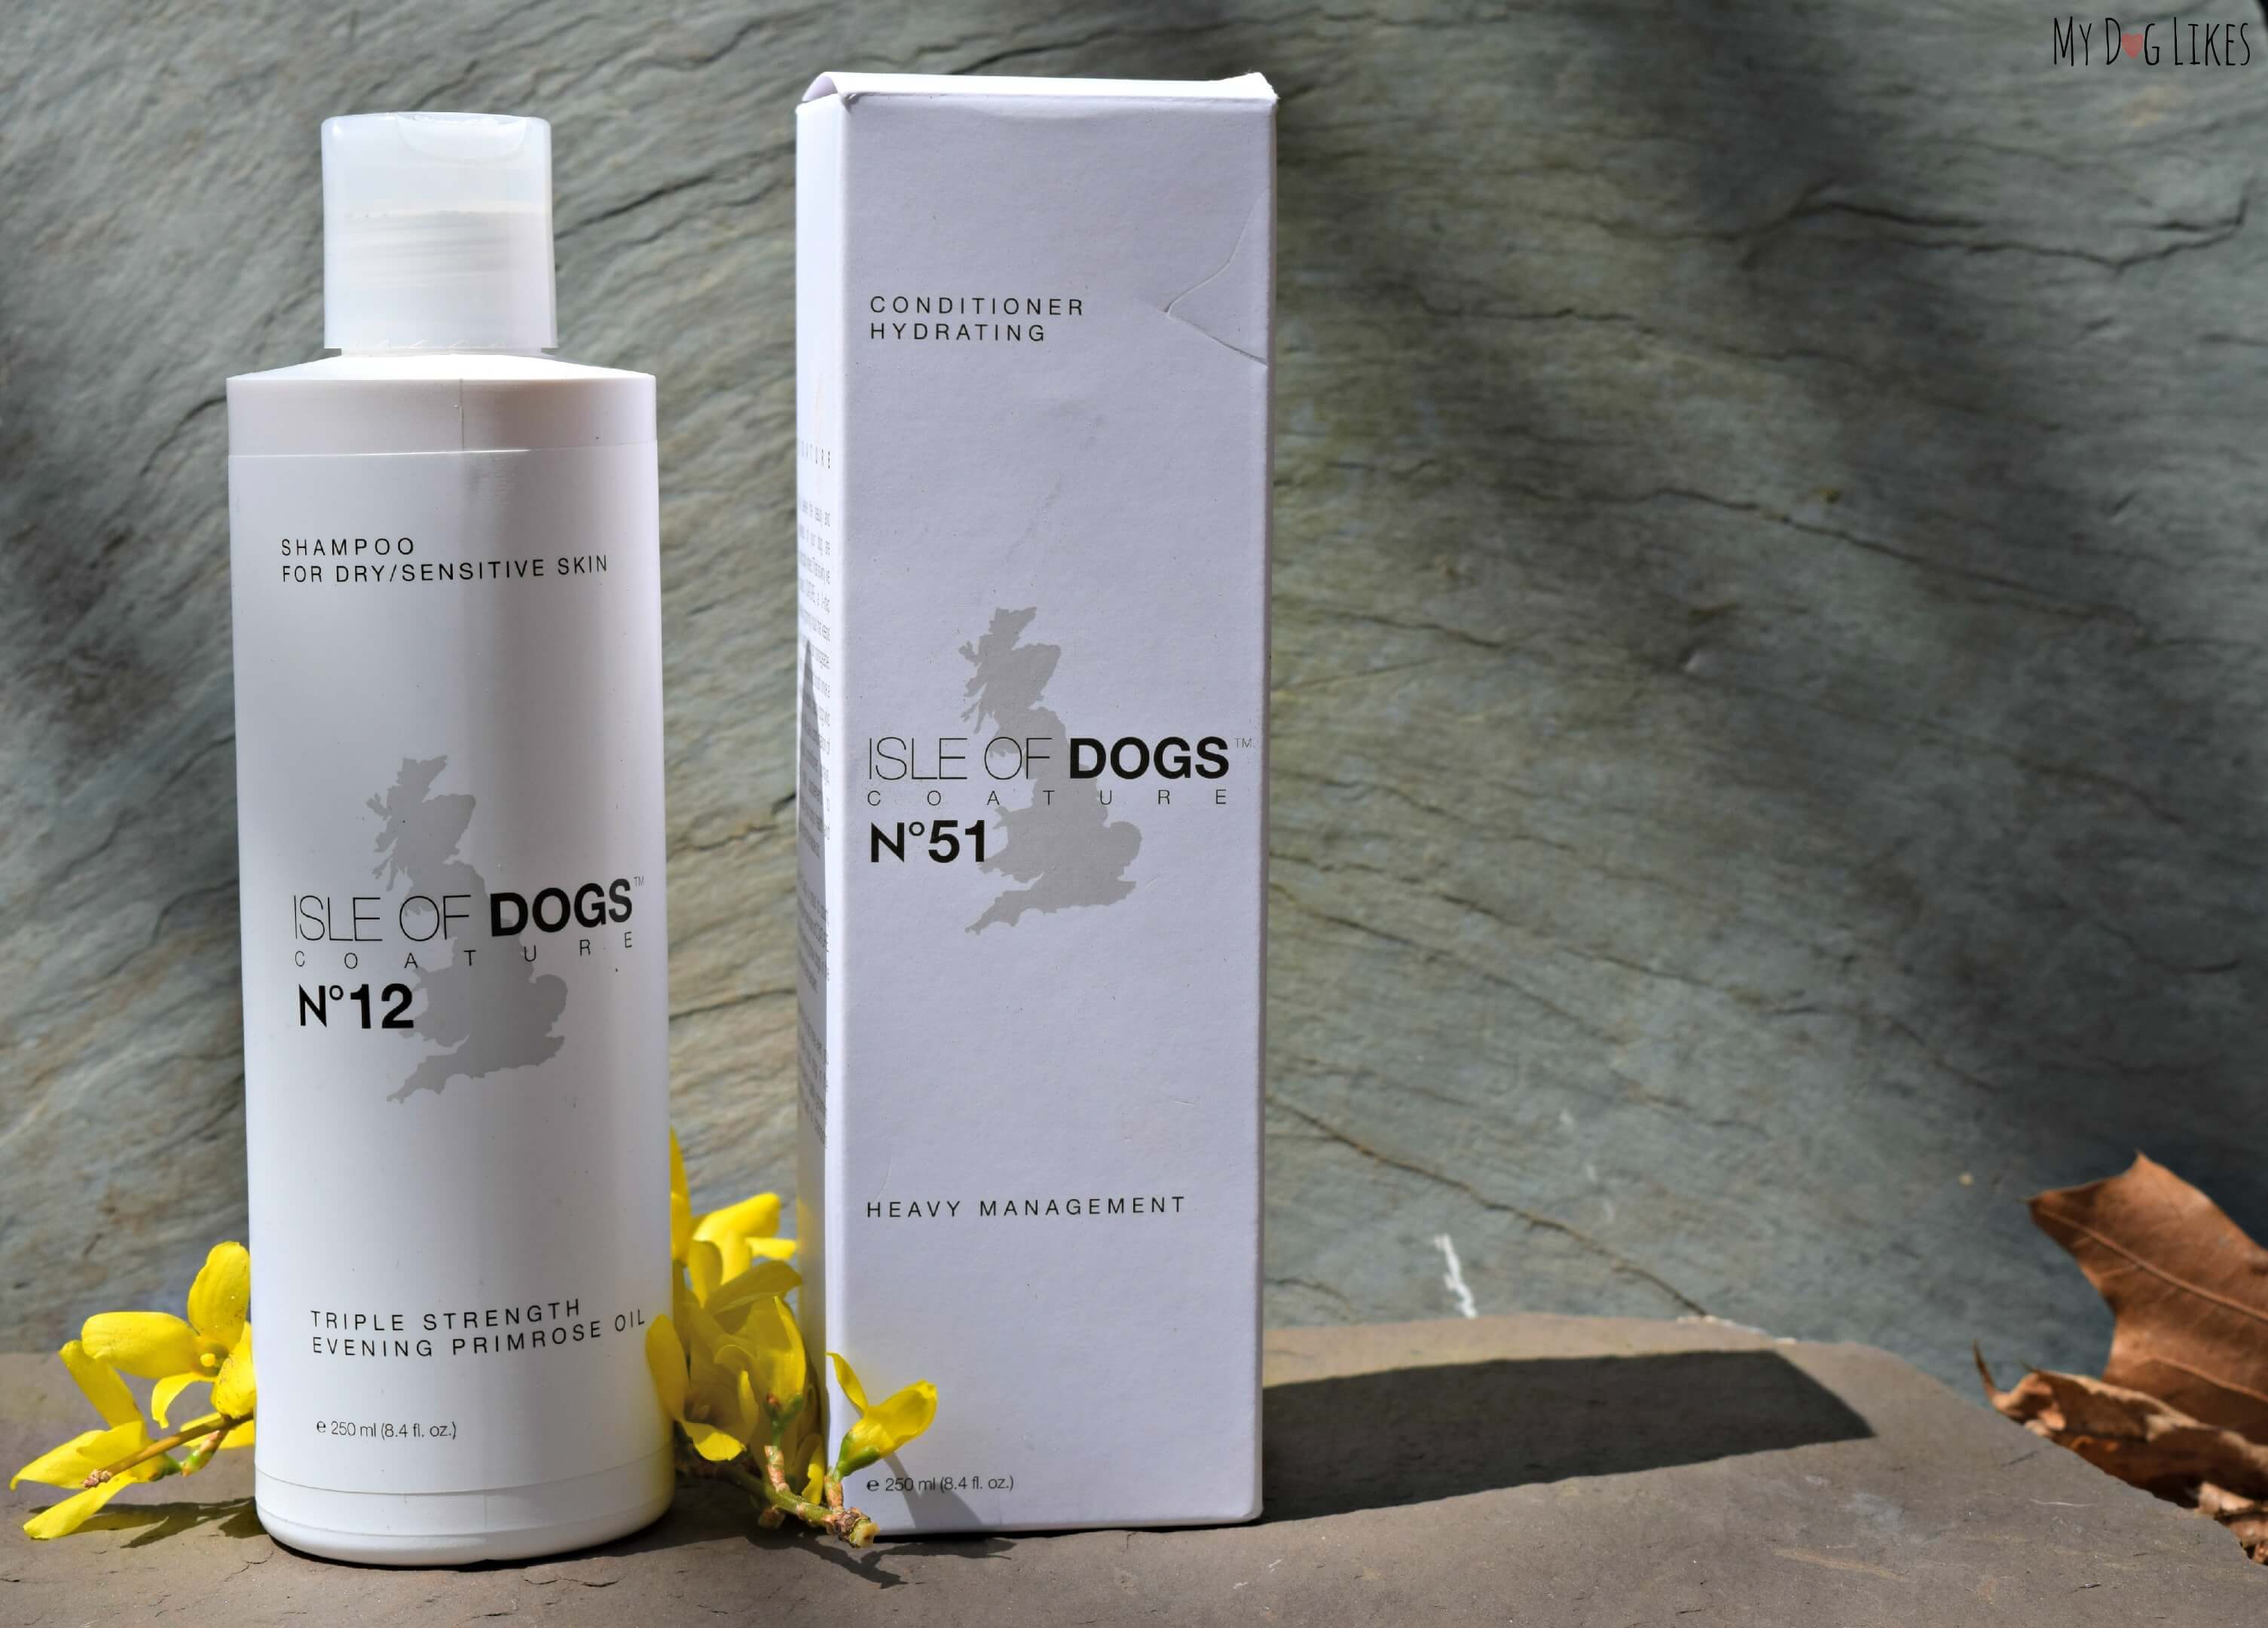 Isle of dogs shampoo conditioner salon quality at home for Salon quality shampoo